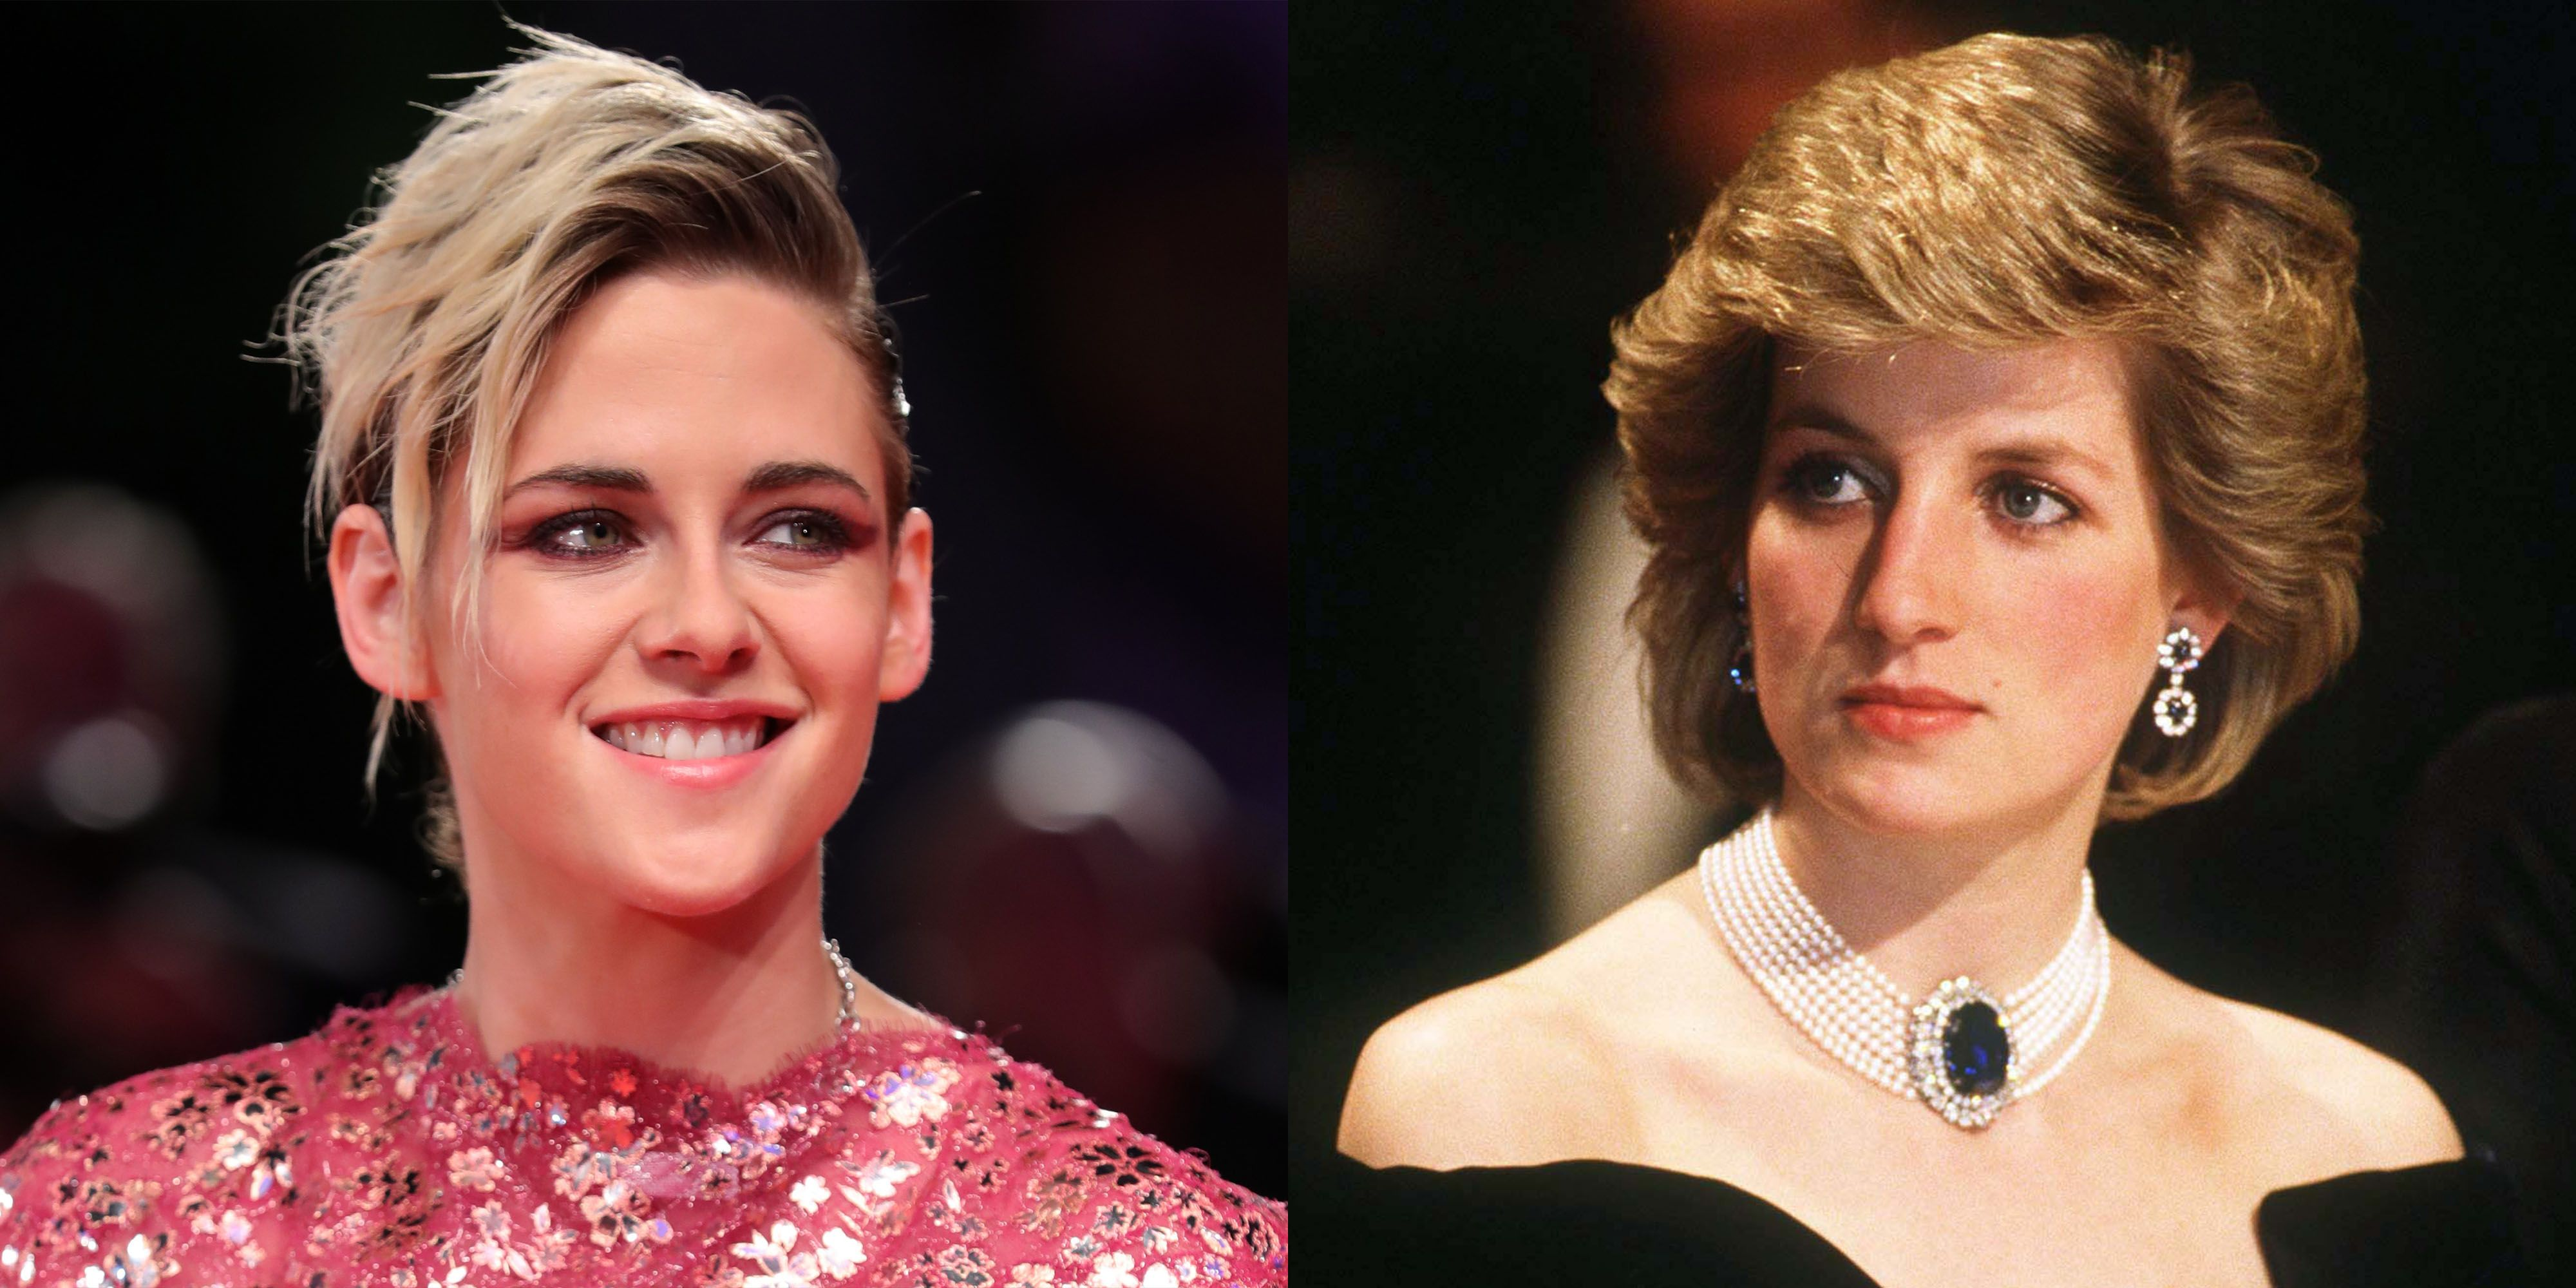 Kristen Stewart Says She Feels Protective Of Princess Diana